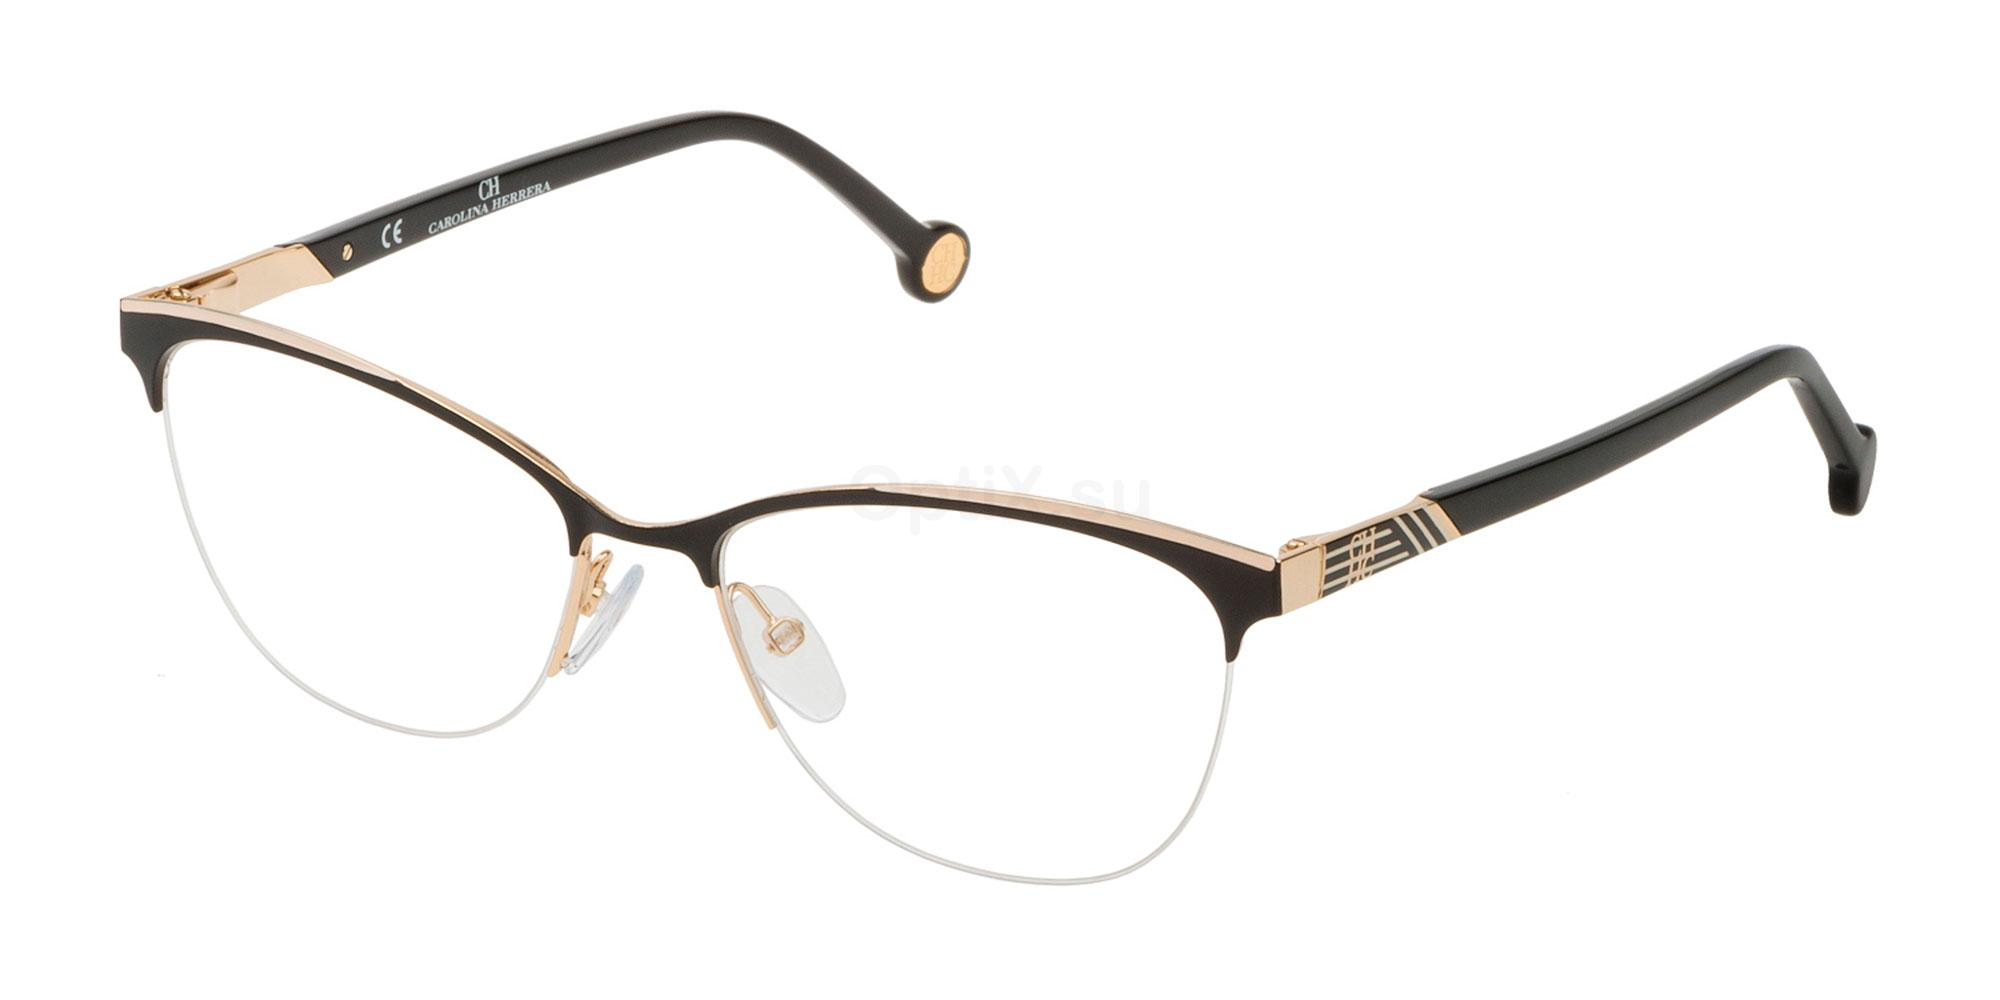 0301 VHE123 Glasses, CH Carolina Herrera